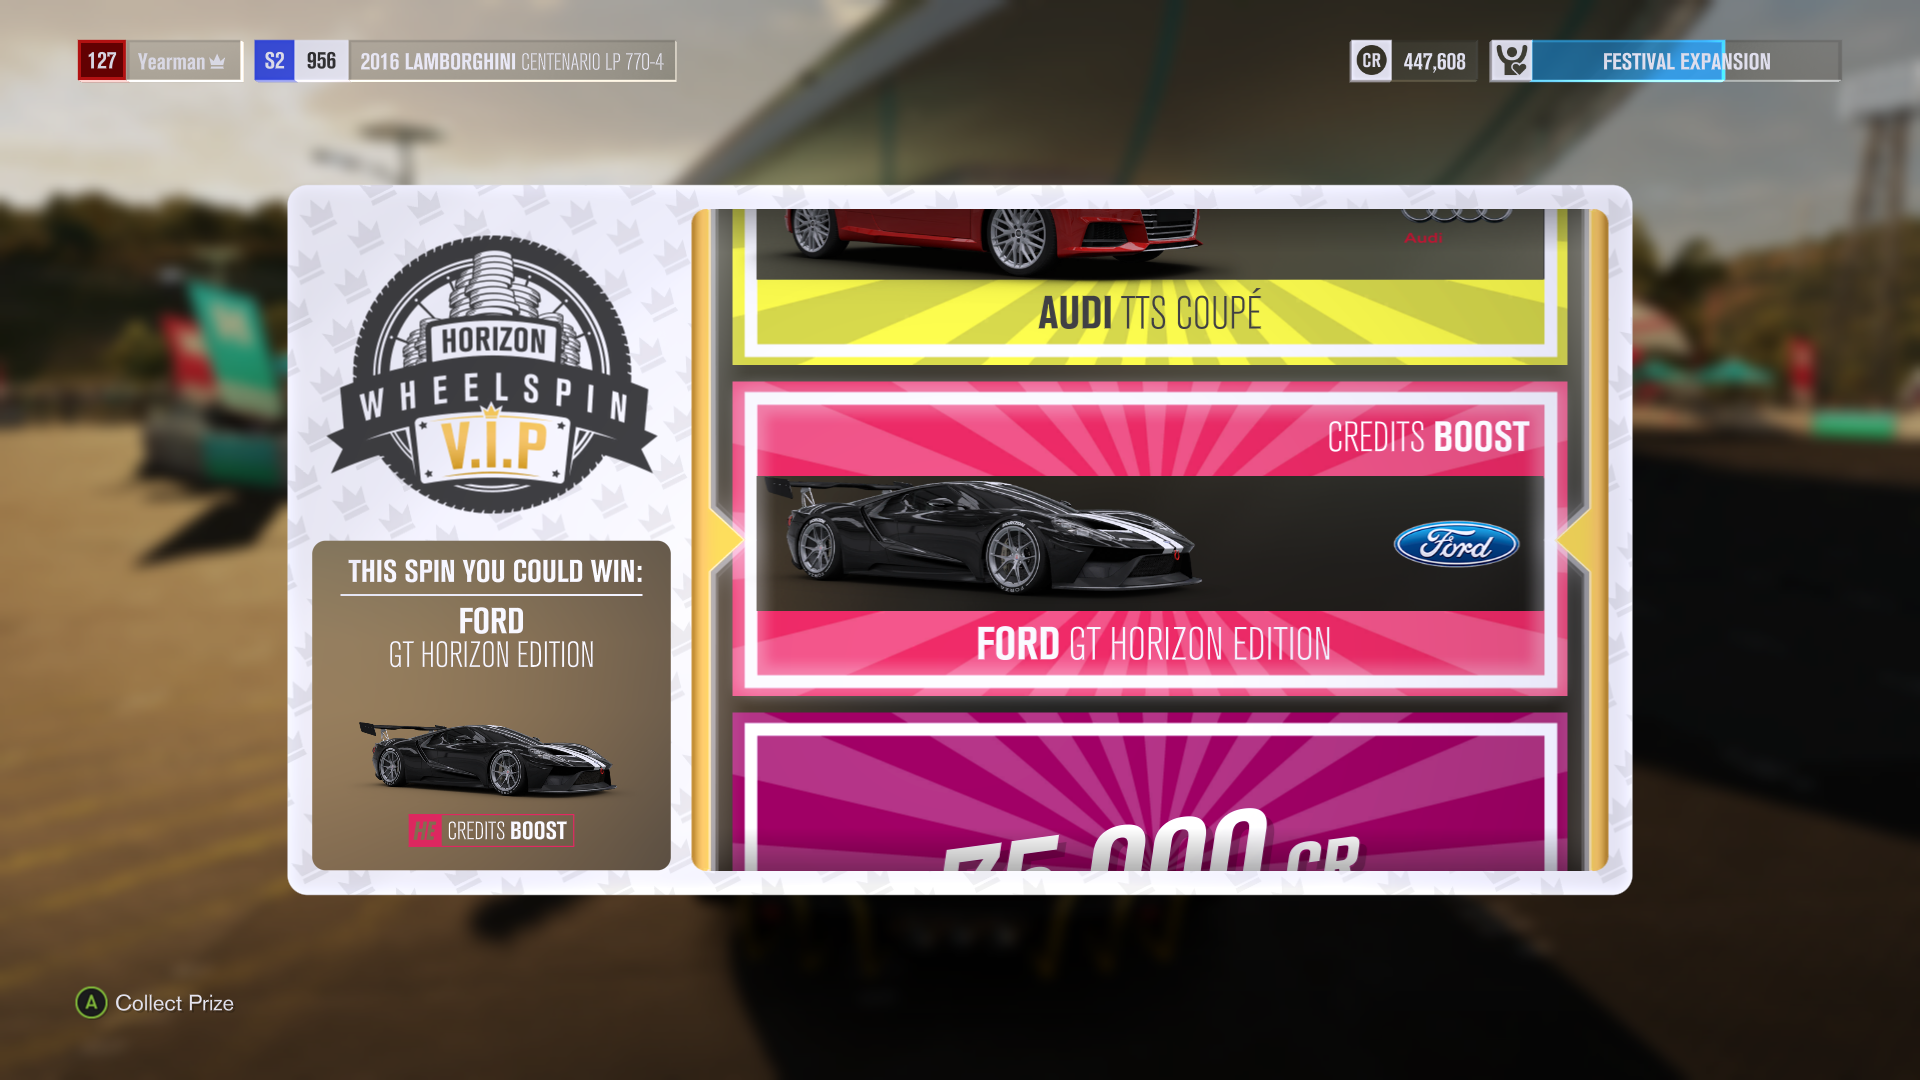 Drivers Will Get A Wheelspin After Each Level Up Where They Can Win A Car Or Credits